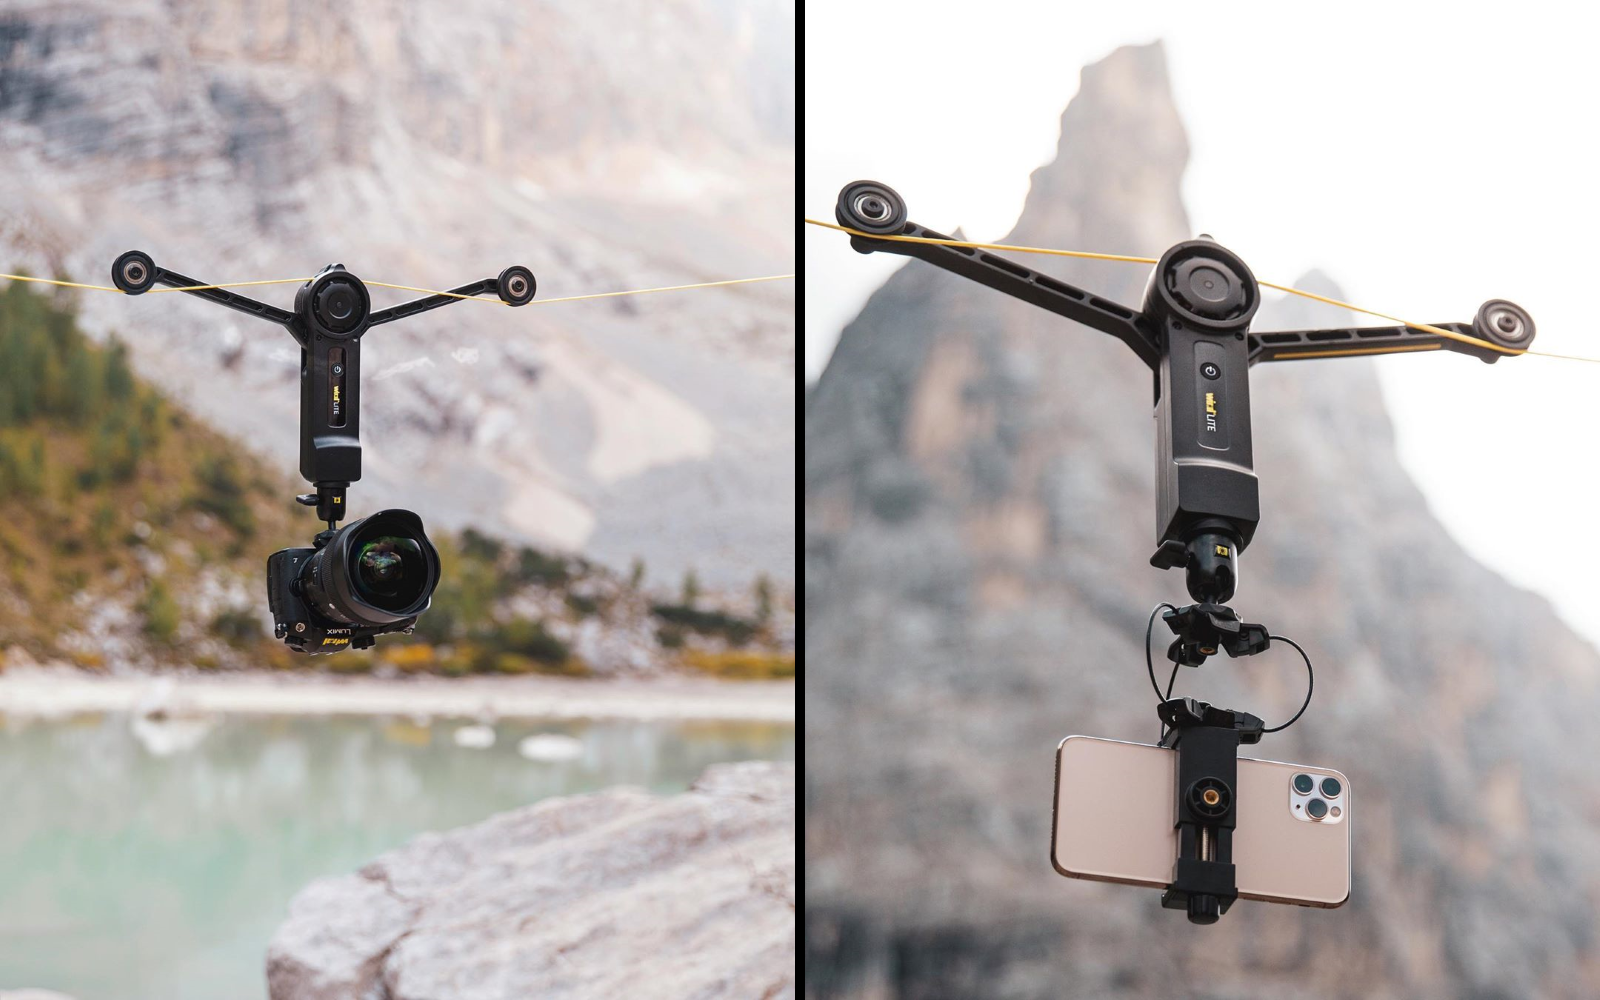 Wiral LITE's Quick Reel rope system - Compatible with cameras, smartphones, etc.